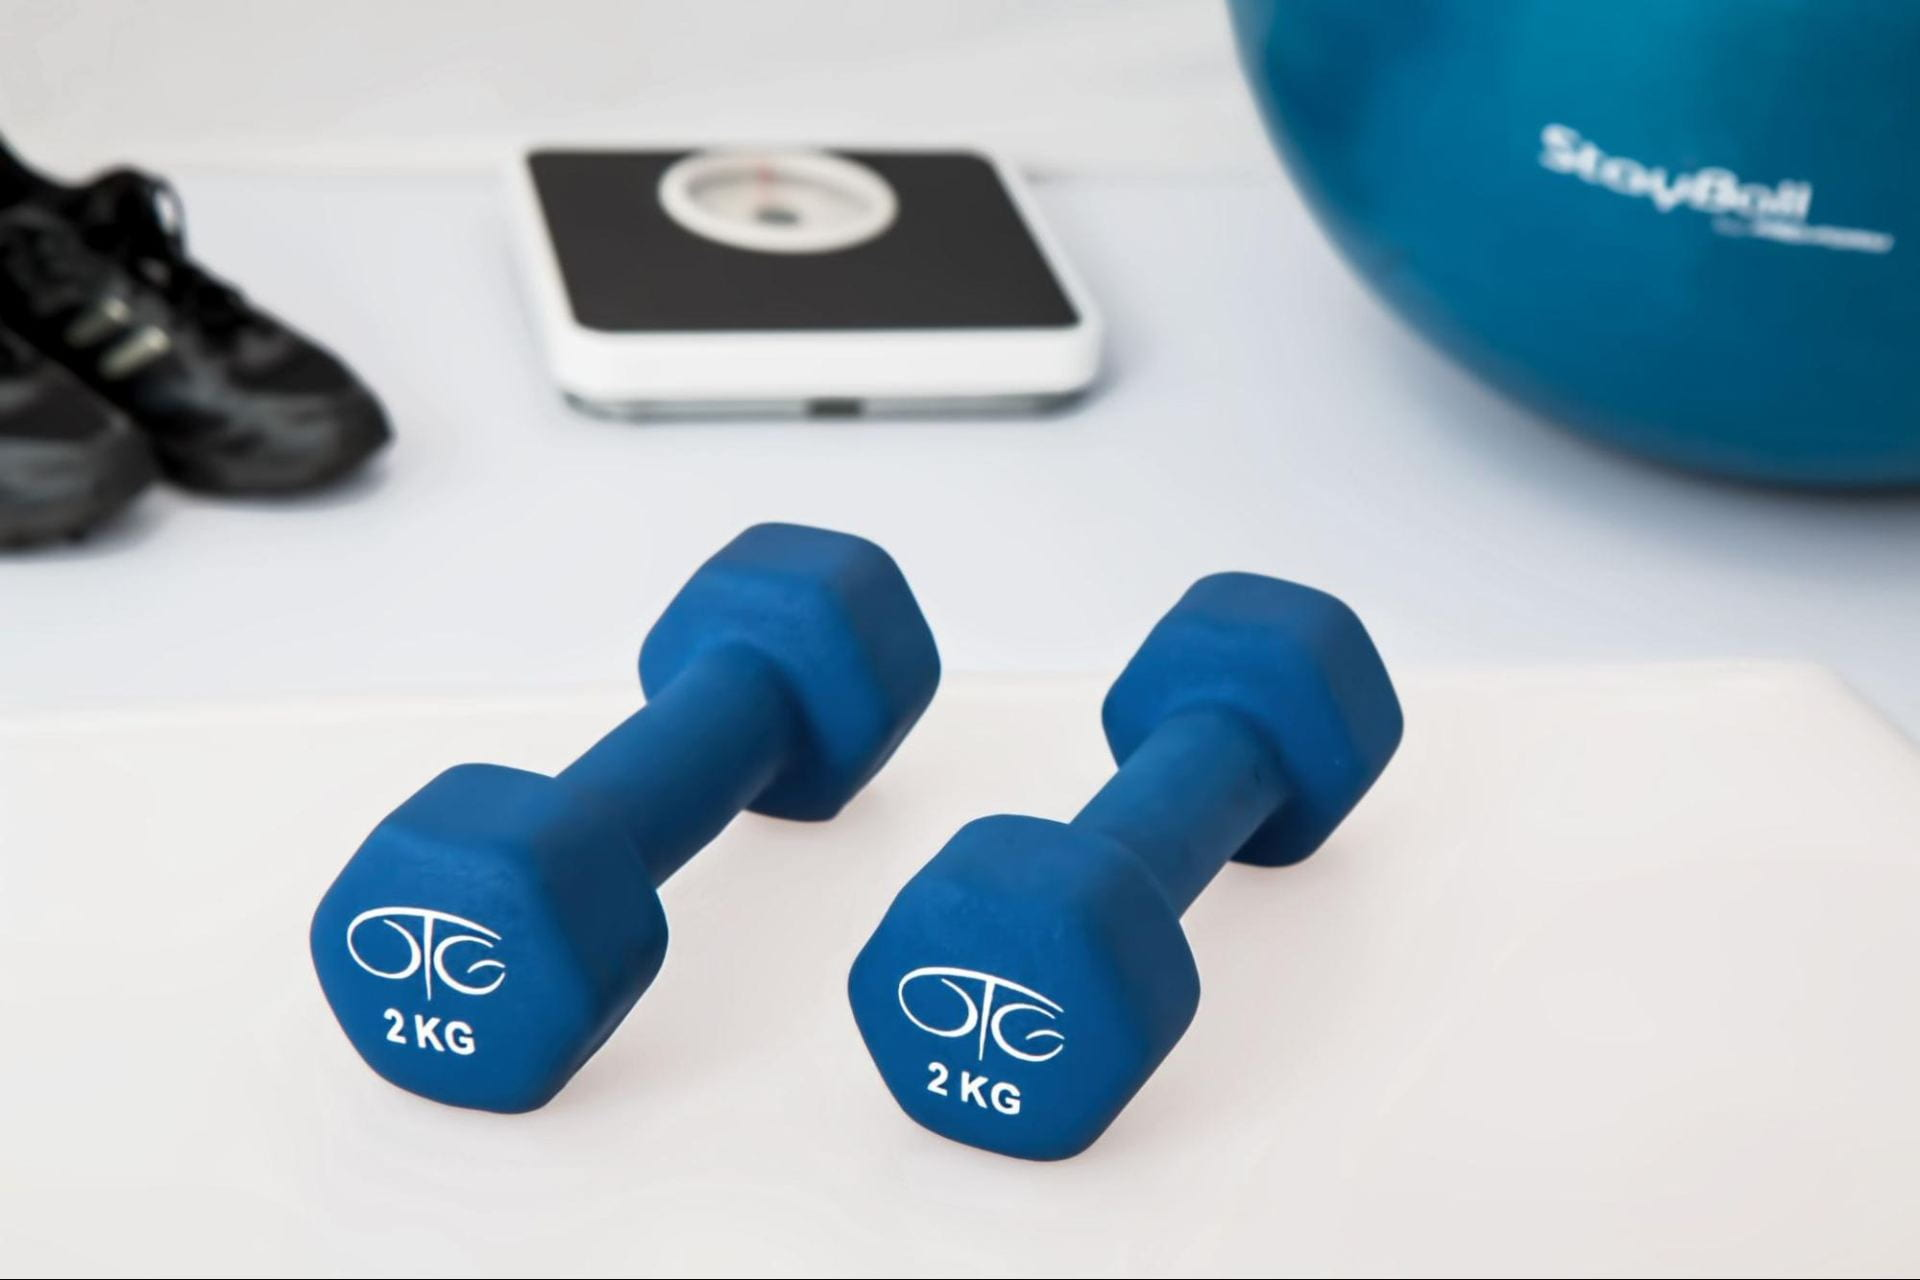 A photograph of at home workout equipment. It includes a blue set of dumbbells, a black pair of sneakers, a scale, and a blue exercise ball laid out on white flooring.